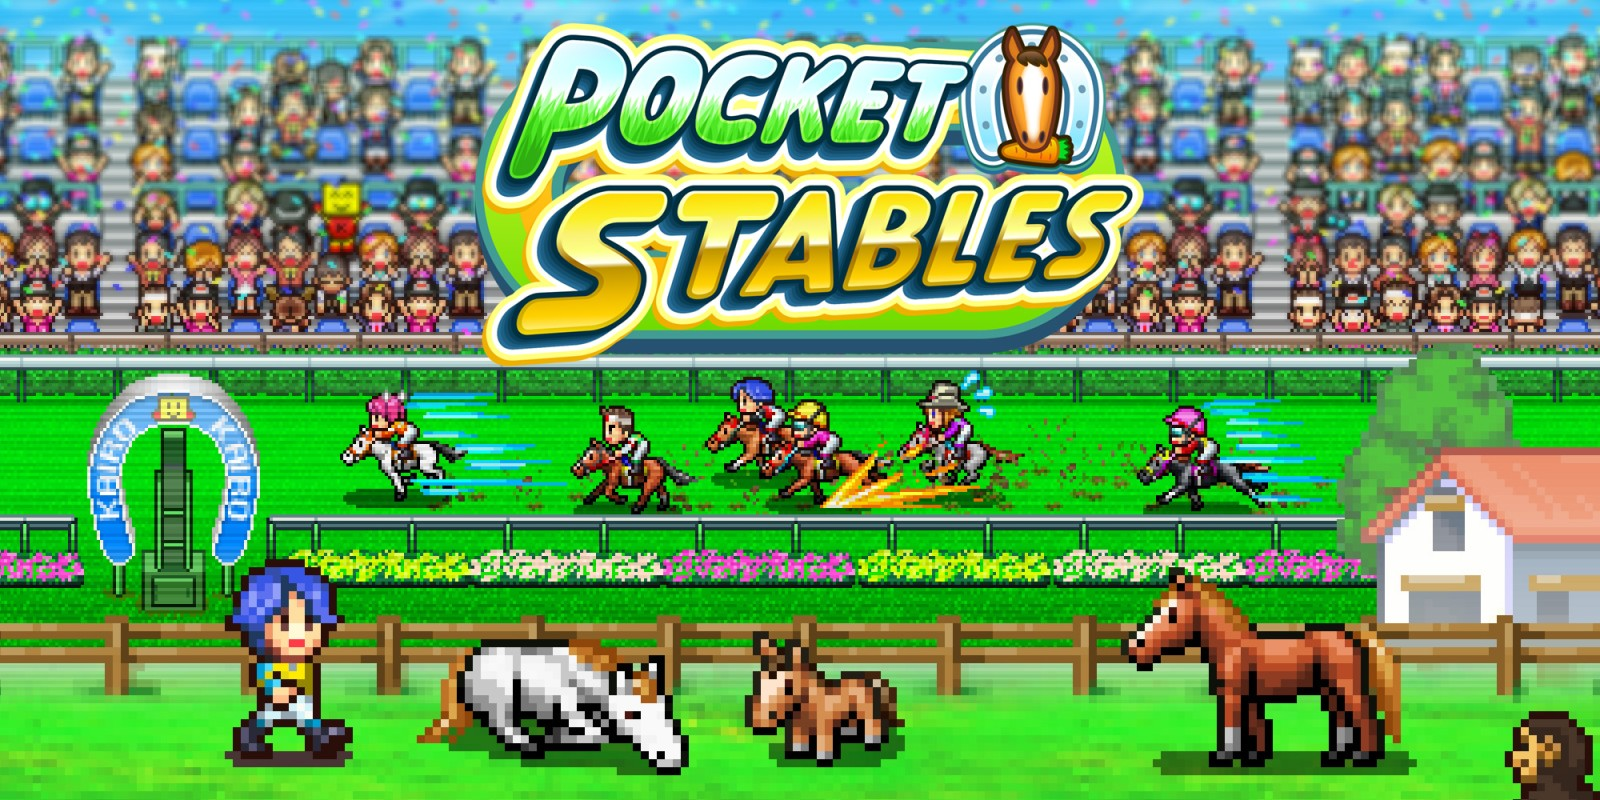 Pocket Stables